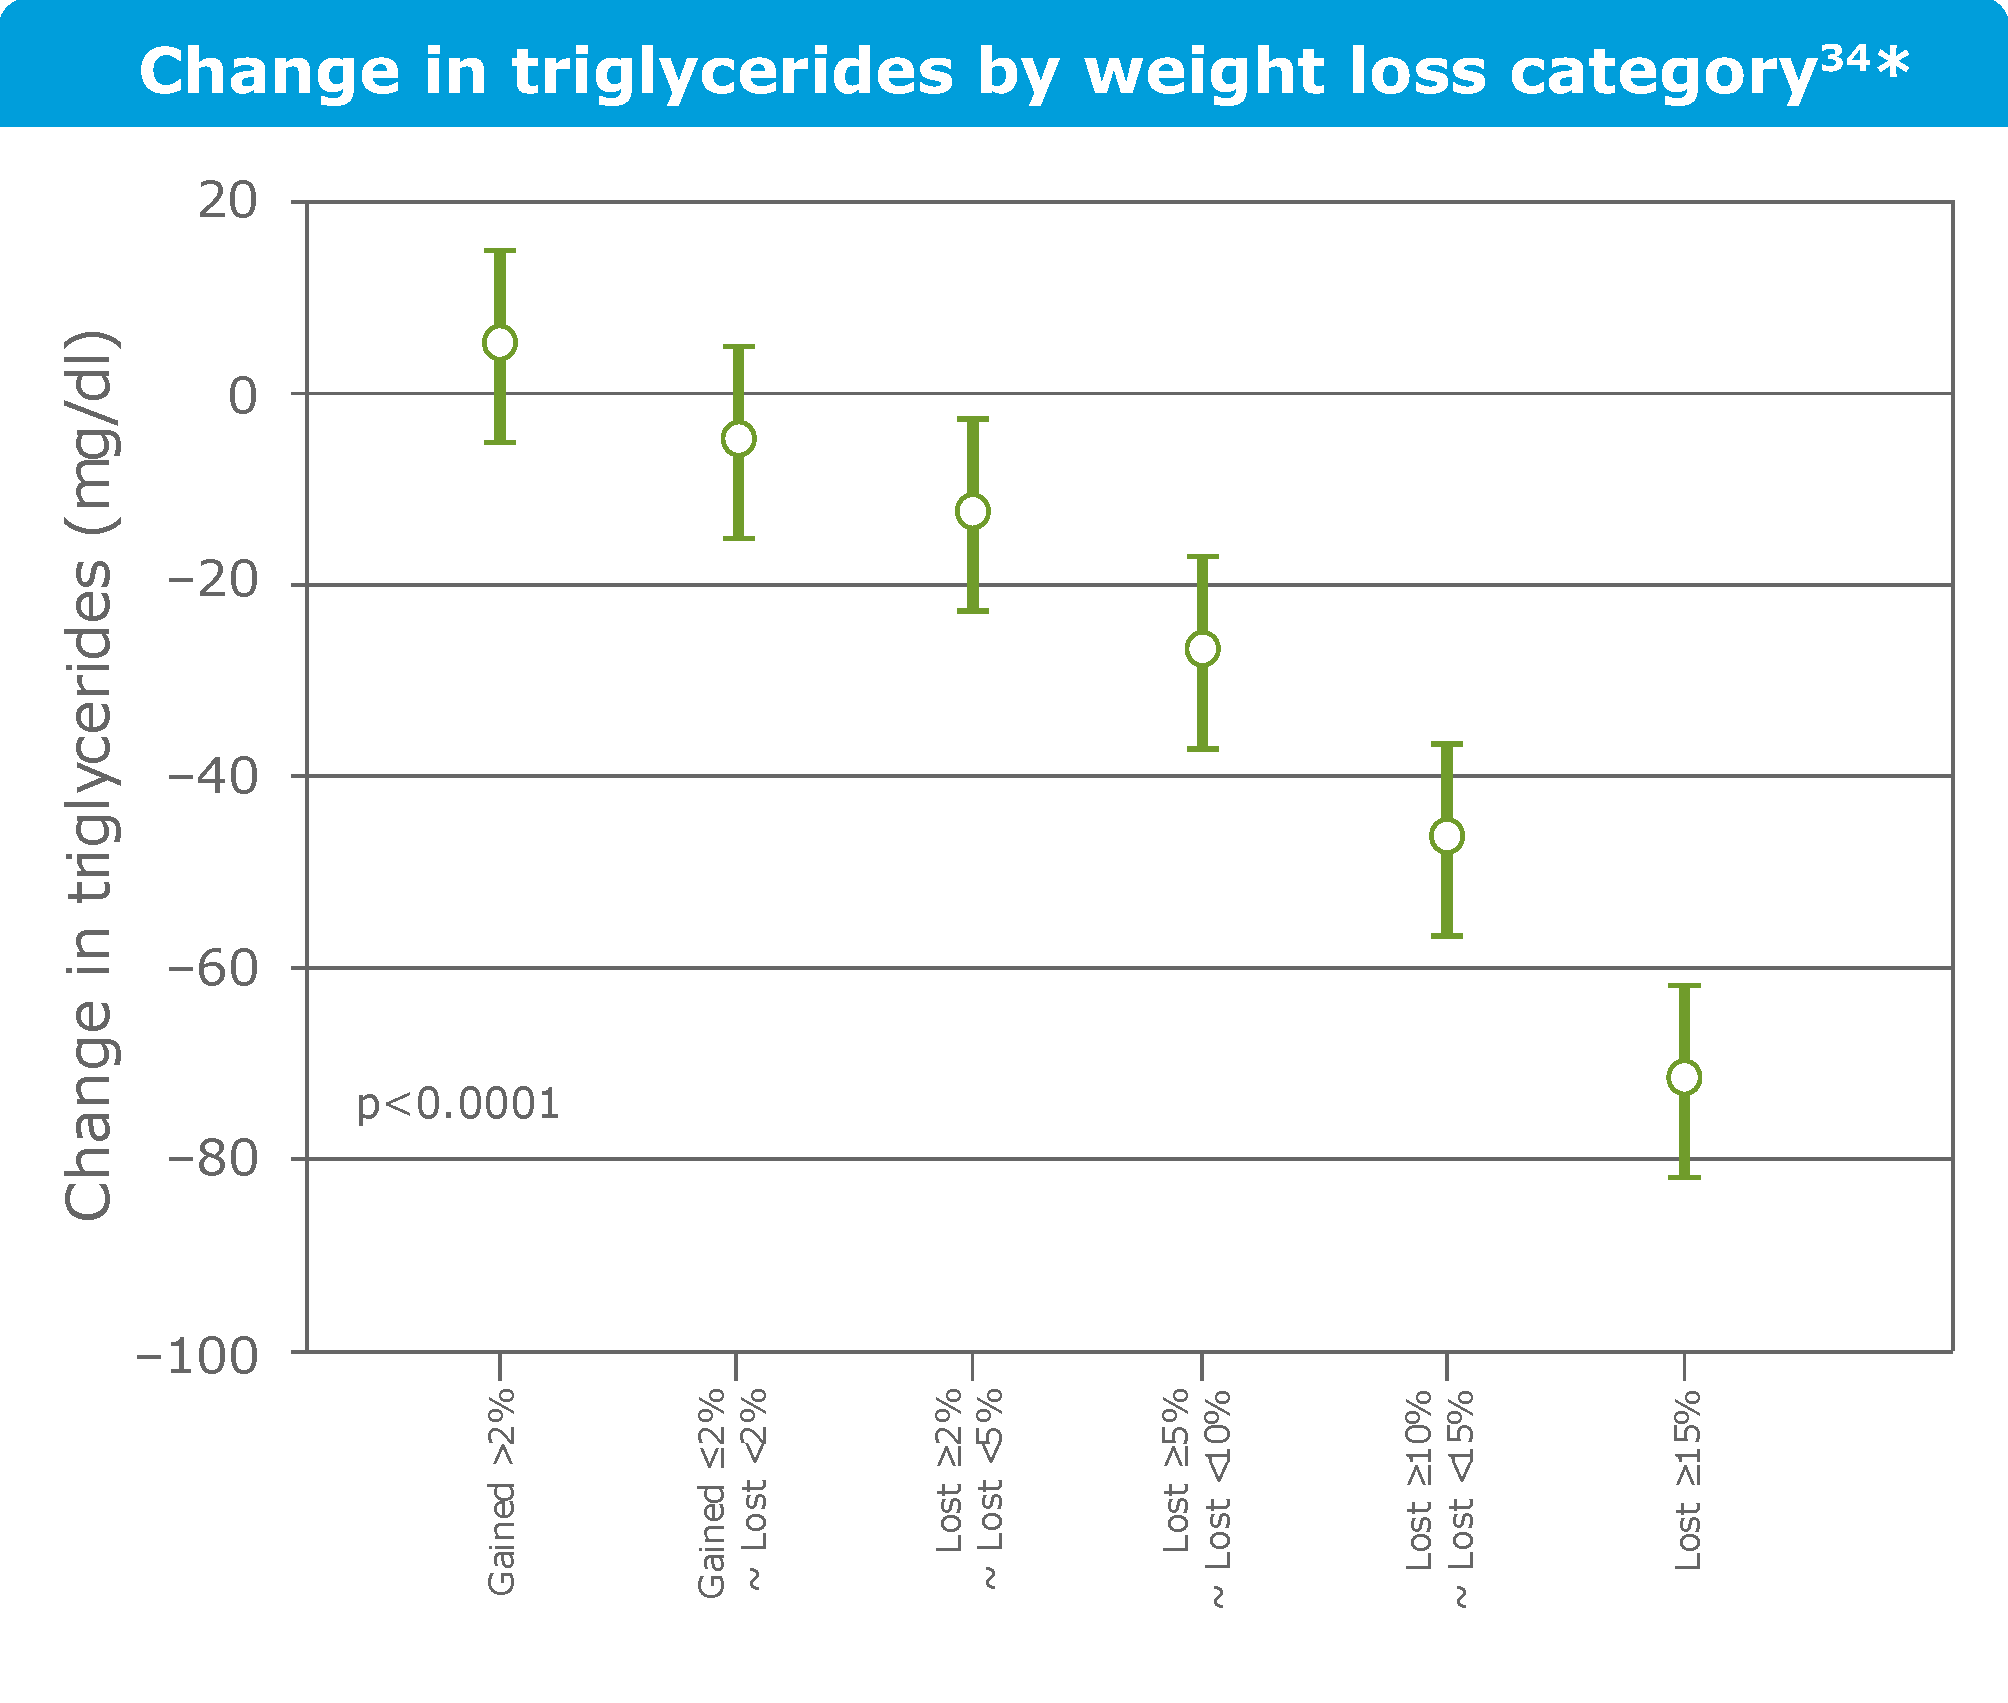 Change in weight loss by weight loss category